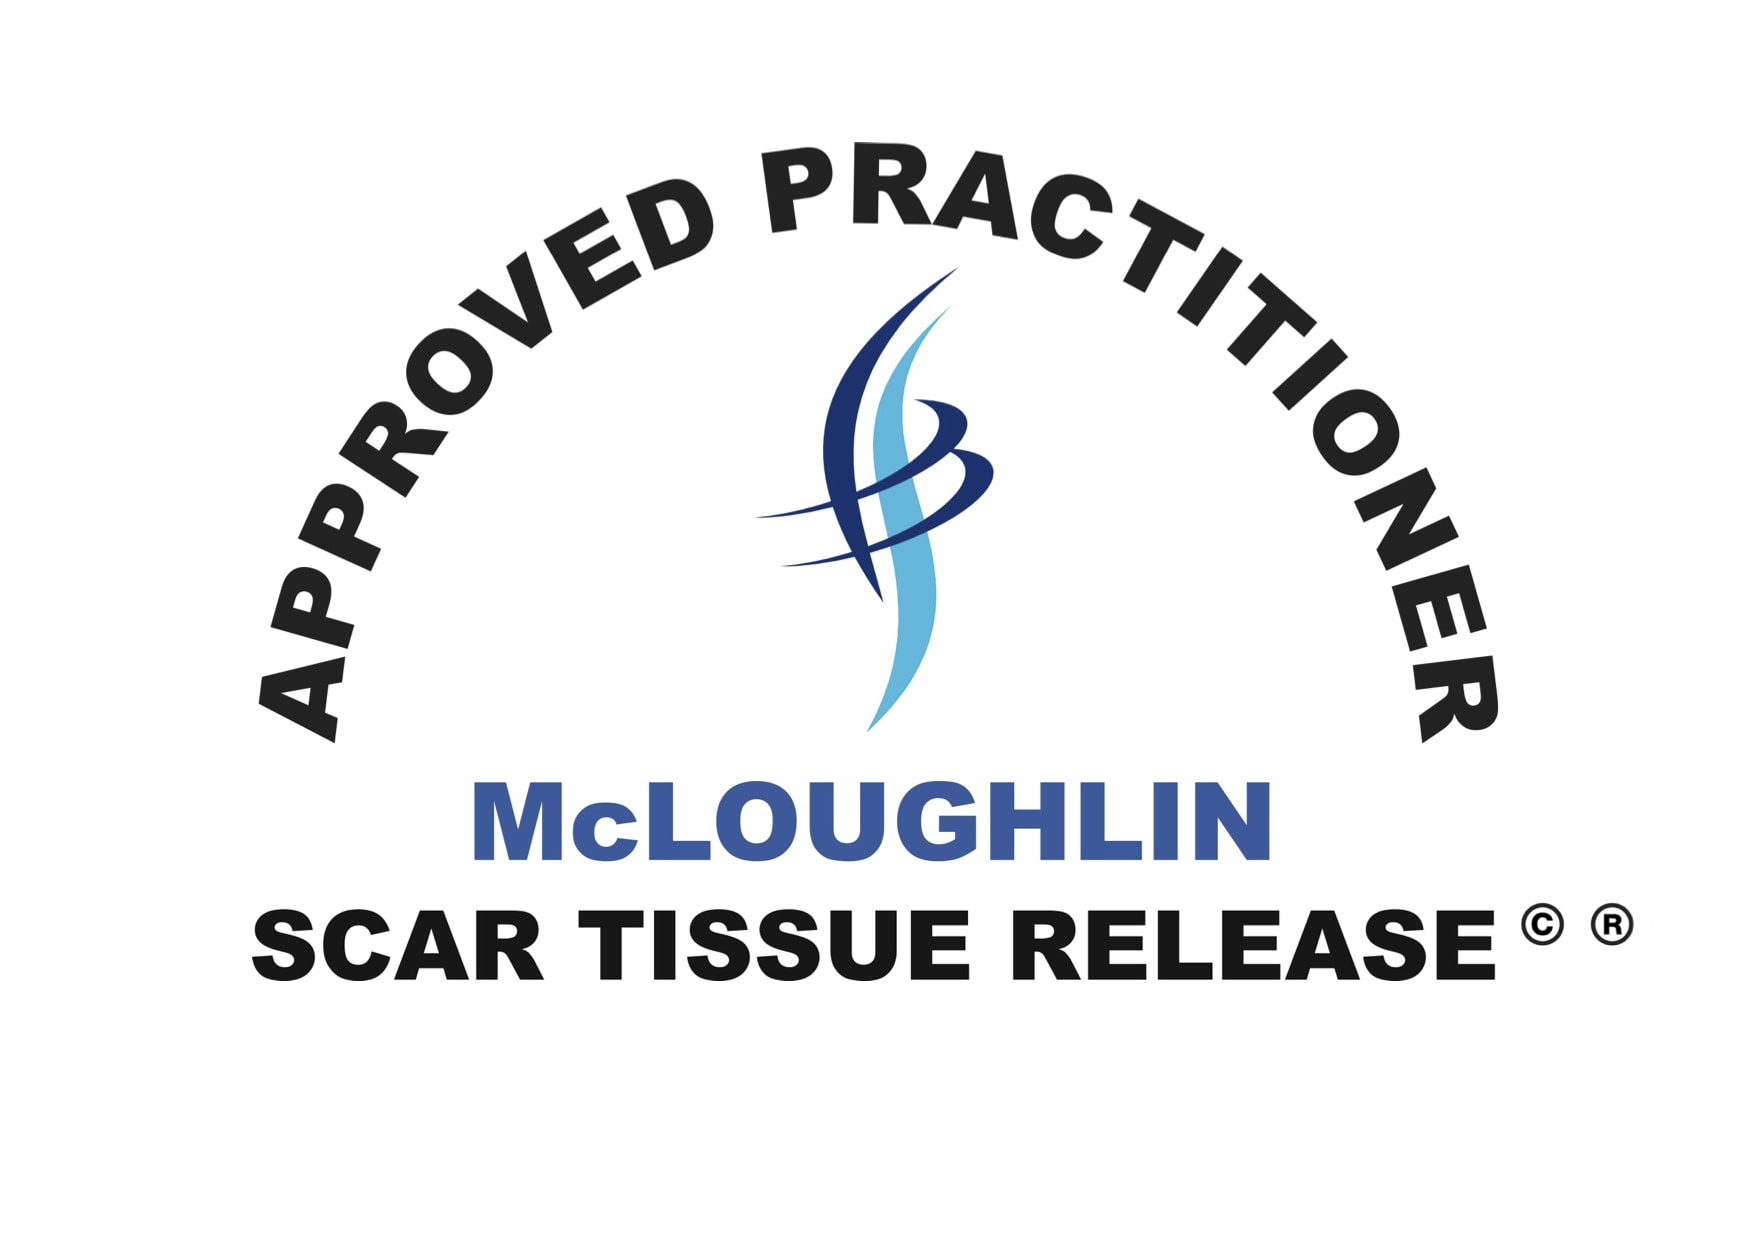 Approved Practitioner McLoughlin Scar Tissue Release